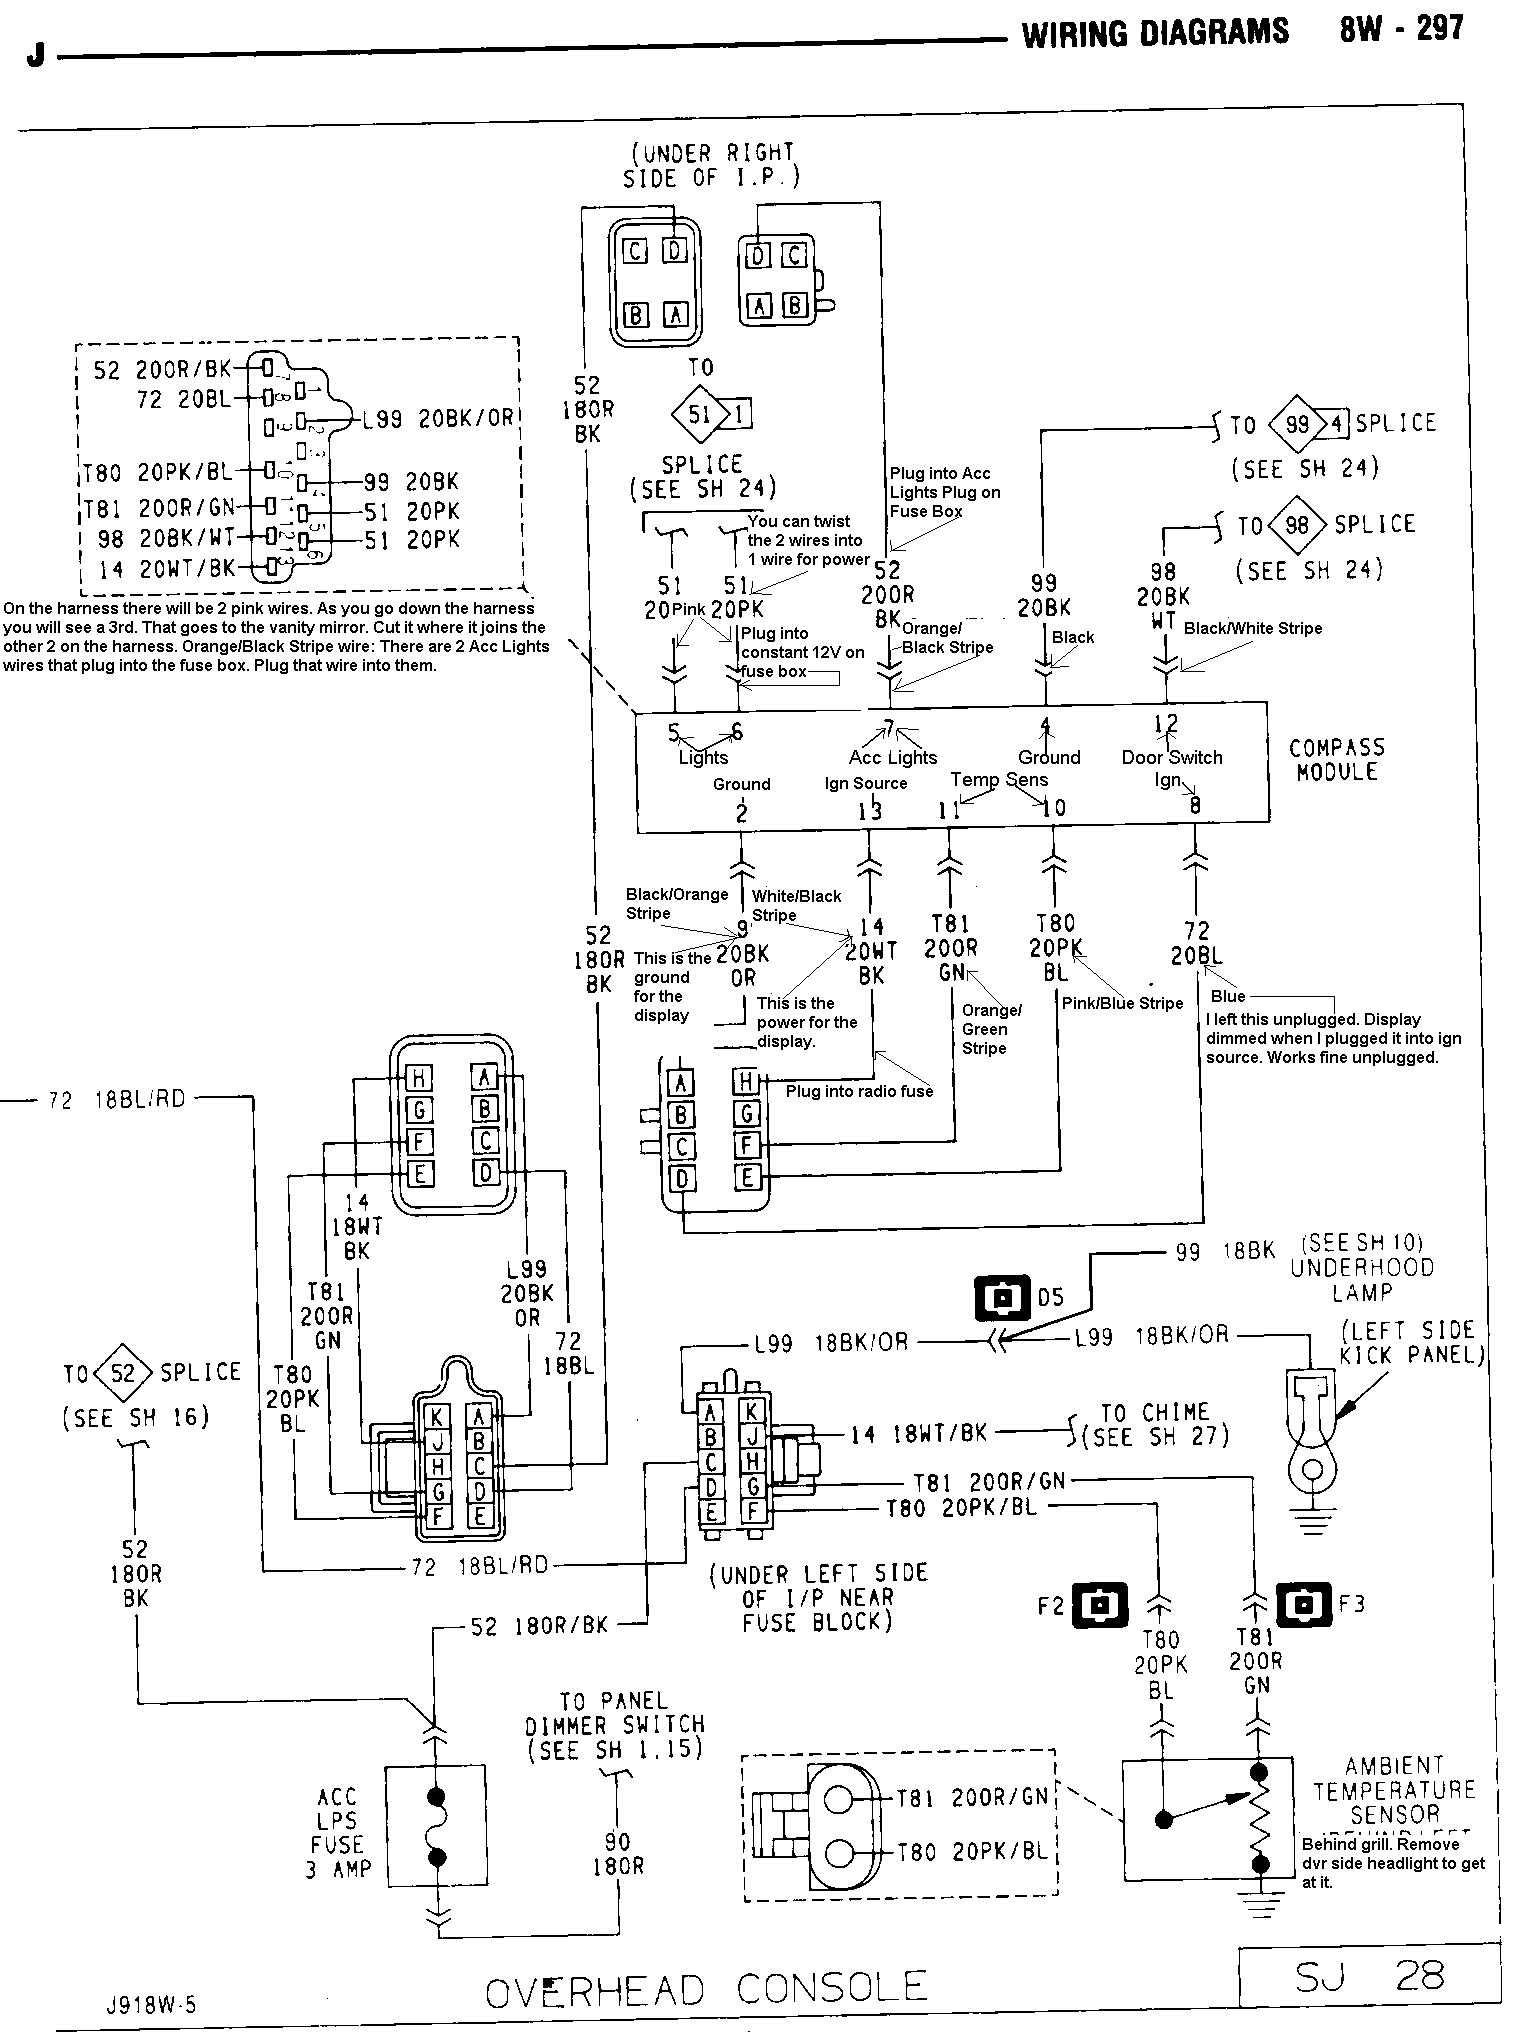 91consolediagrammodified tom 'oljeep' collins fsj wiring page jeep cherokee overhead console wiring diagram at soozxer.org